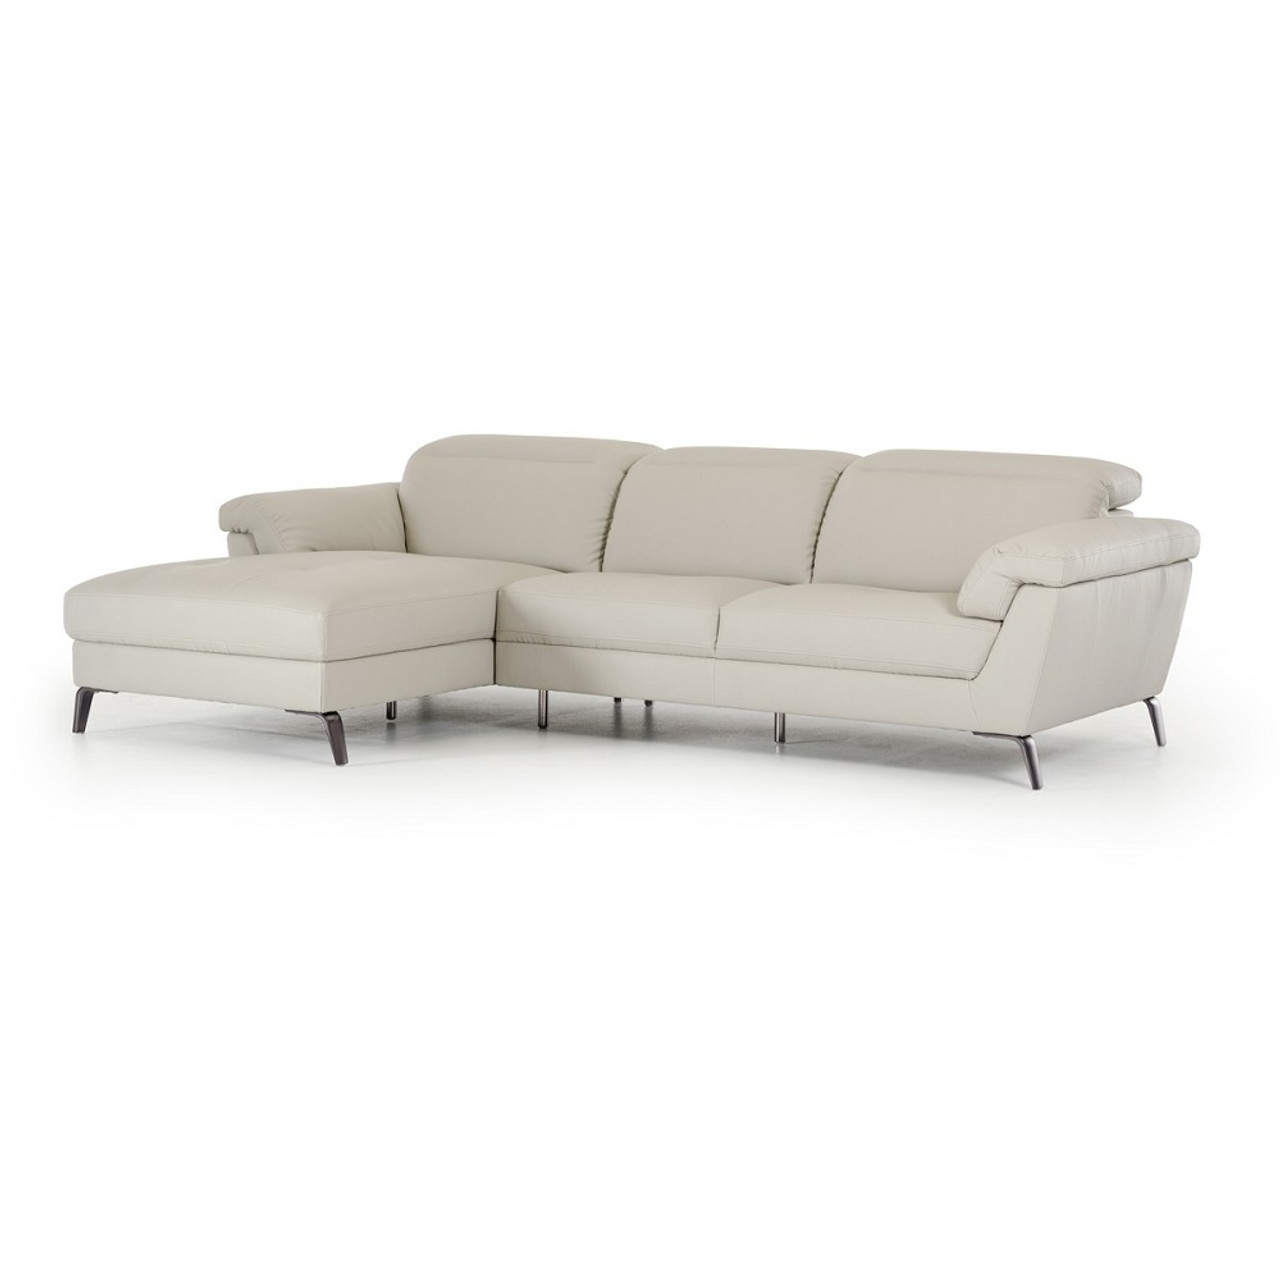 Divani Casa Edelweiss Modern Light Grey Eco Leather Sectional Sofa Lounge La